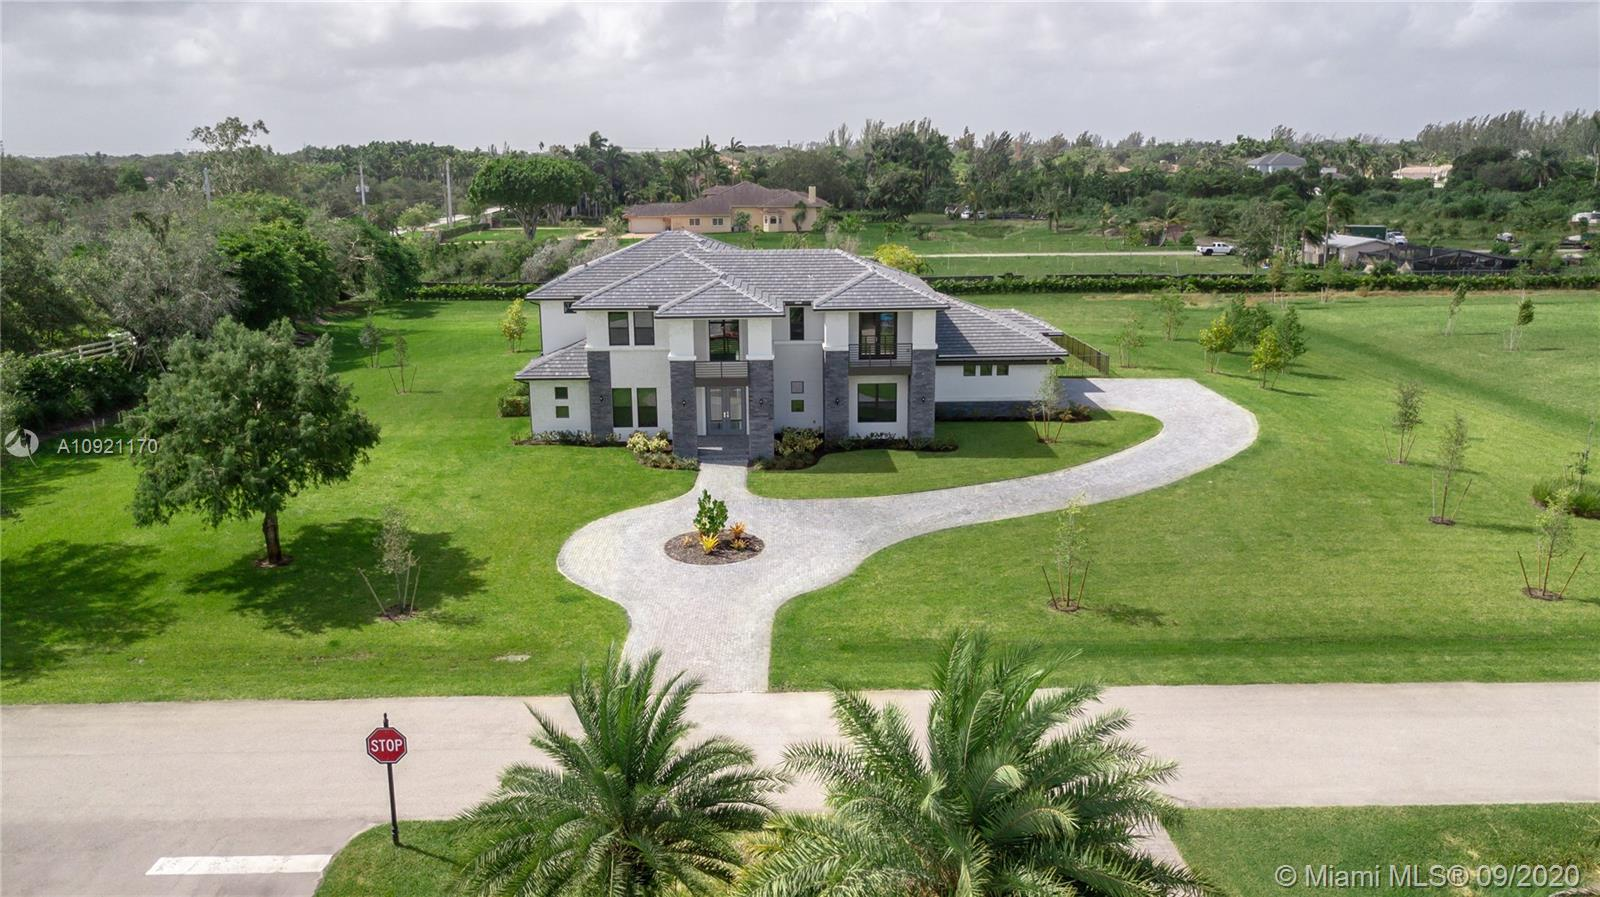 Rolling Oaks, 17802 SW 58th St, Southwest Ranches, Florida 33331